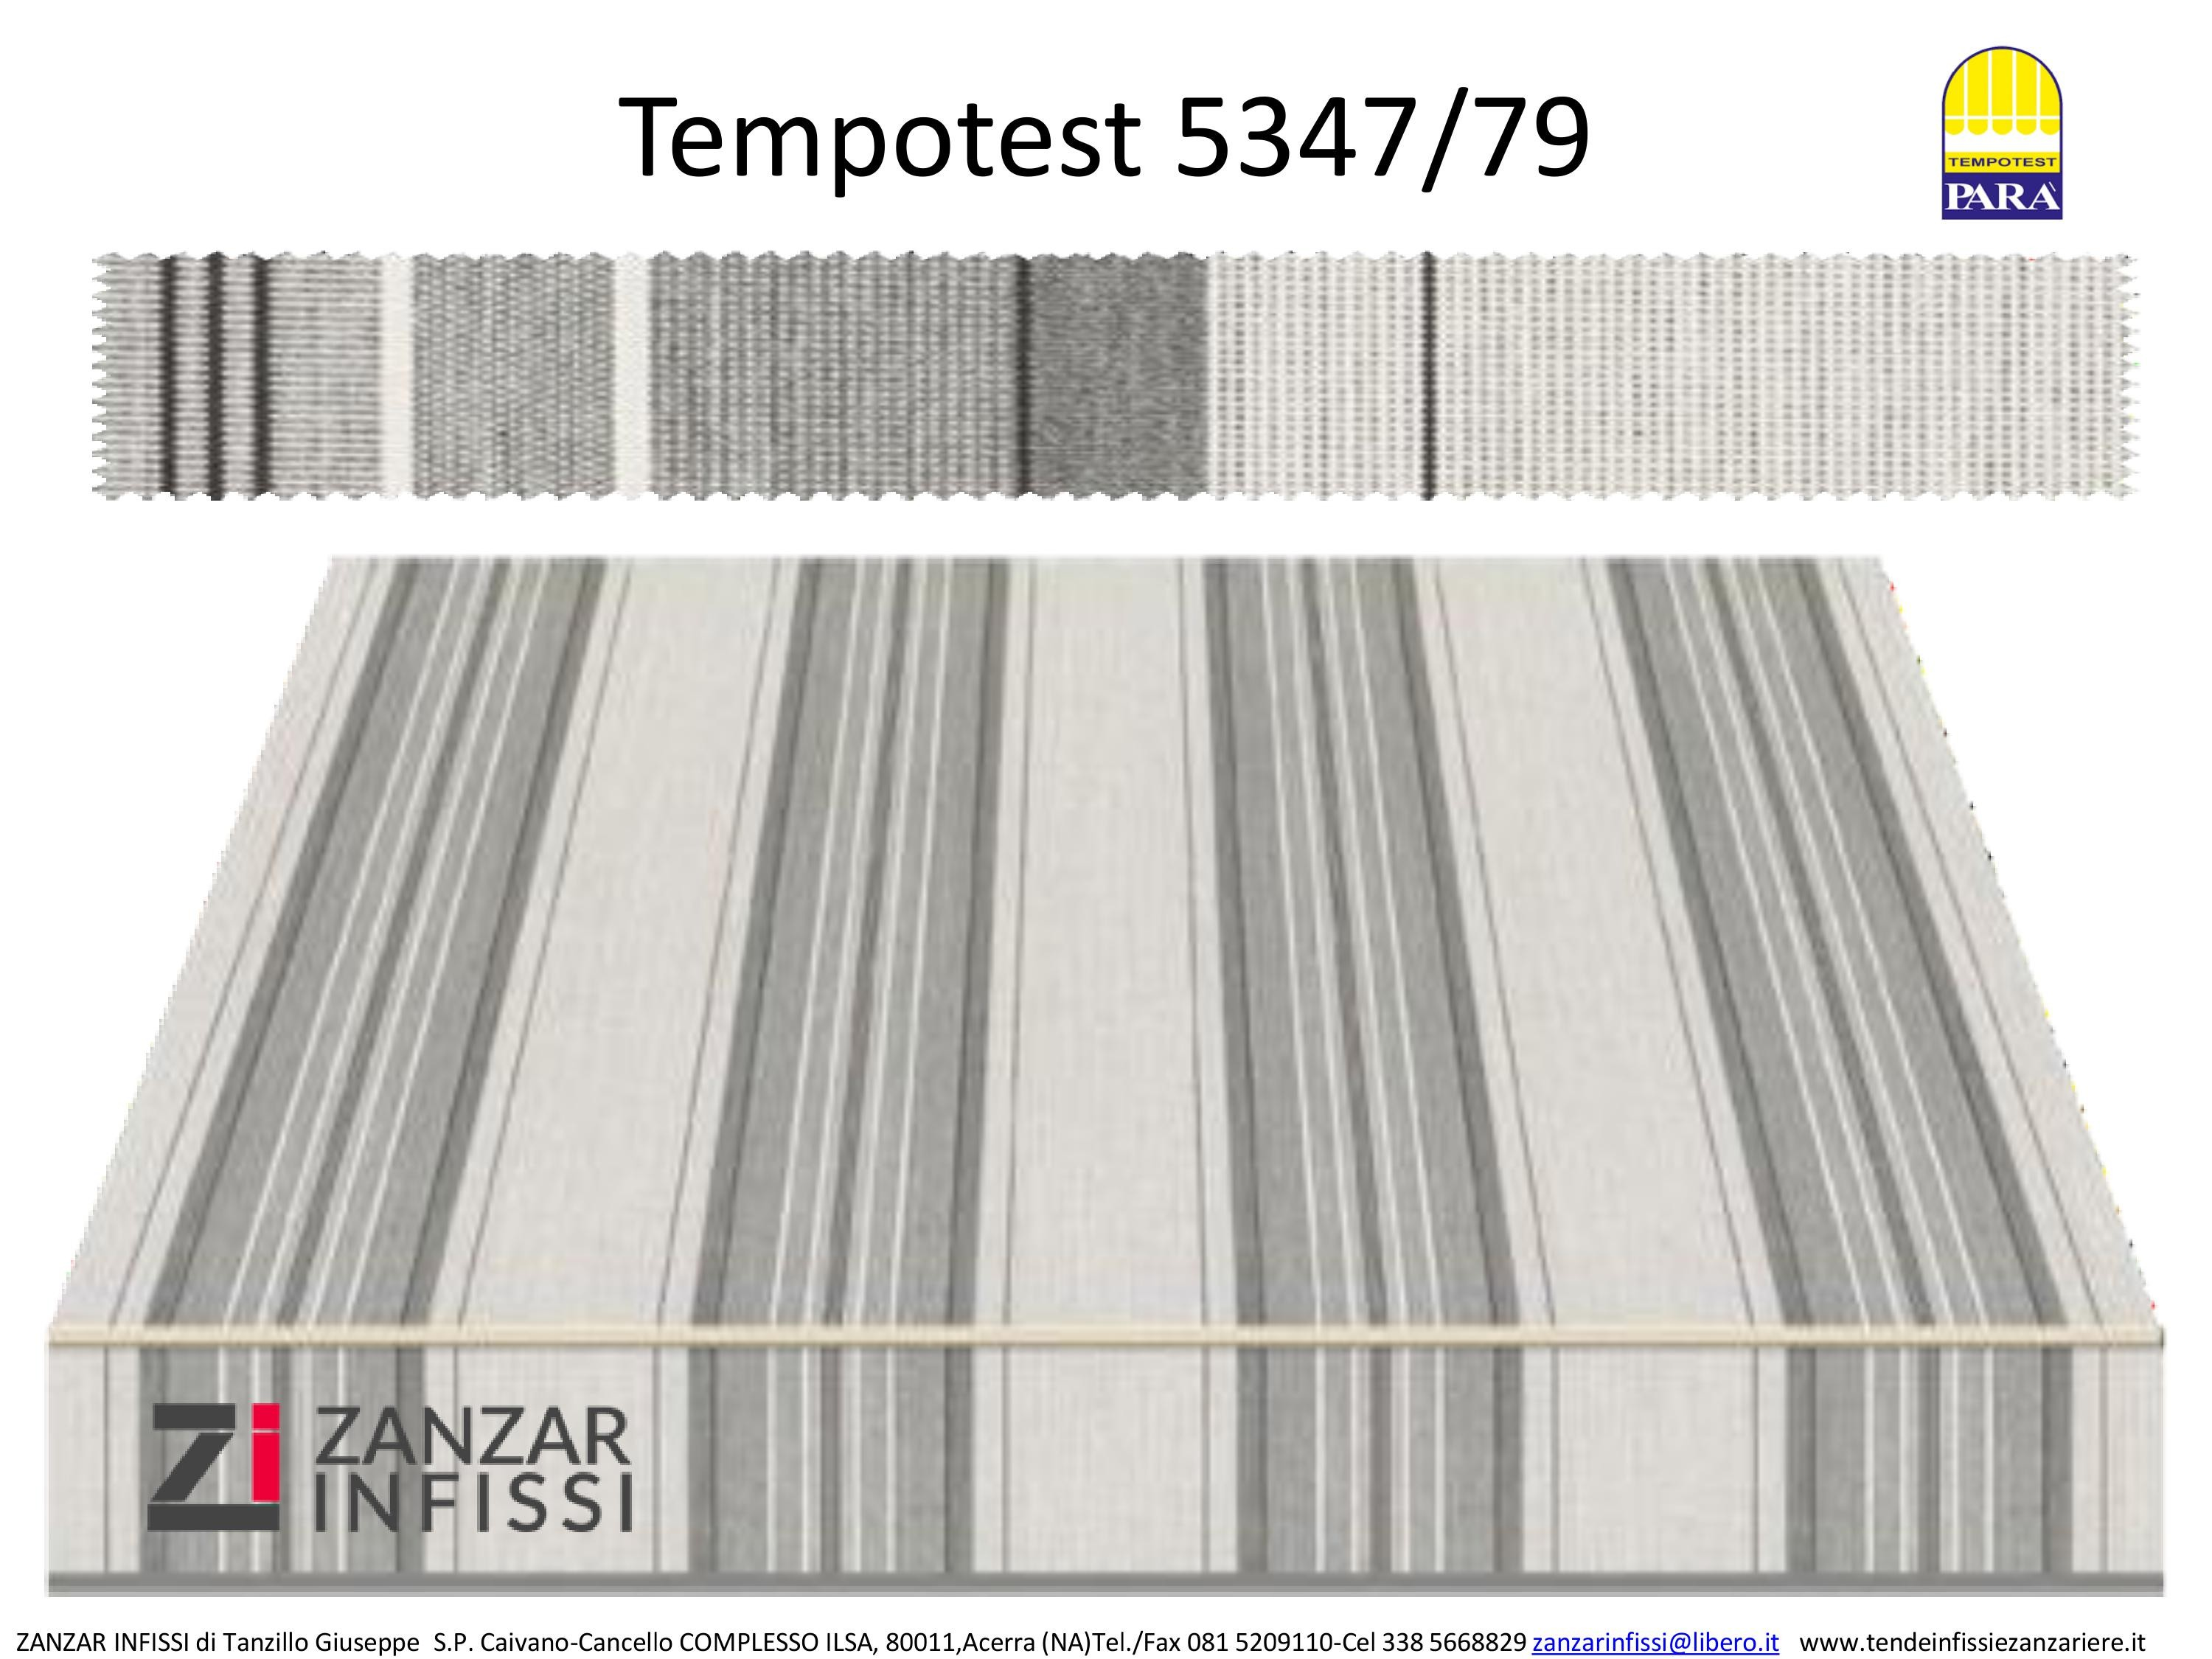 Tempotest 5347/79